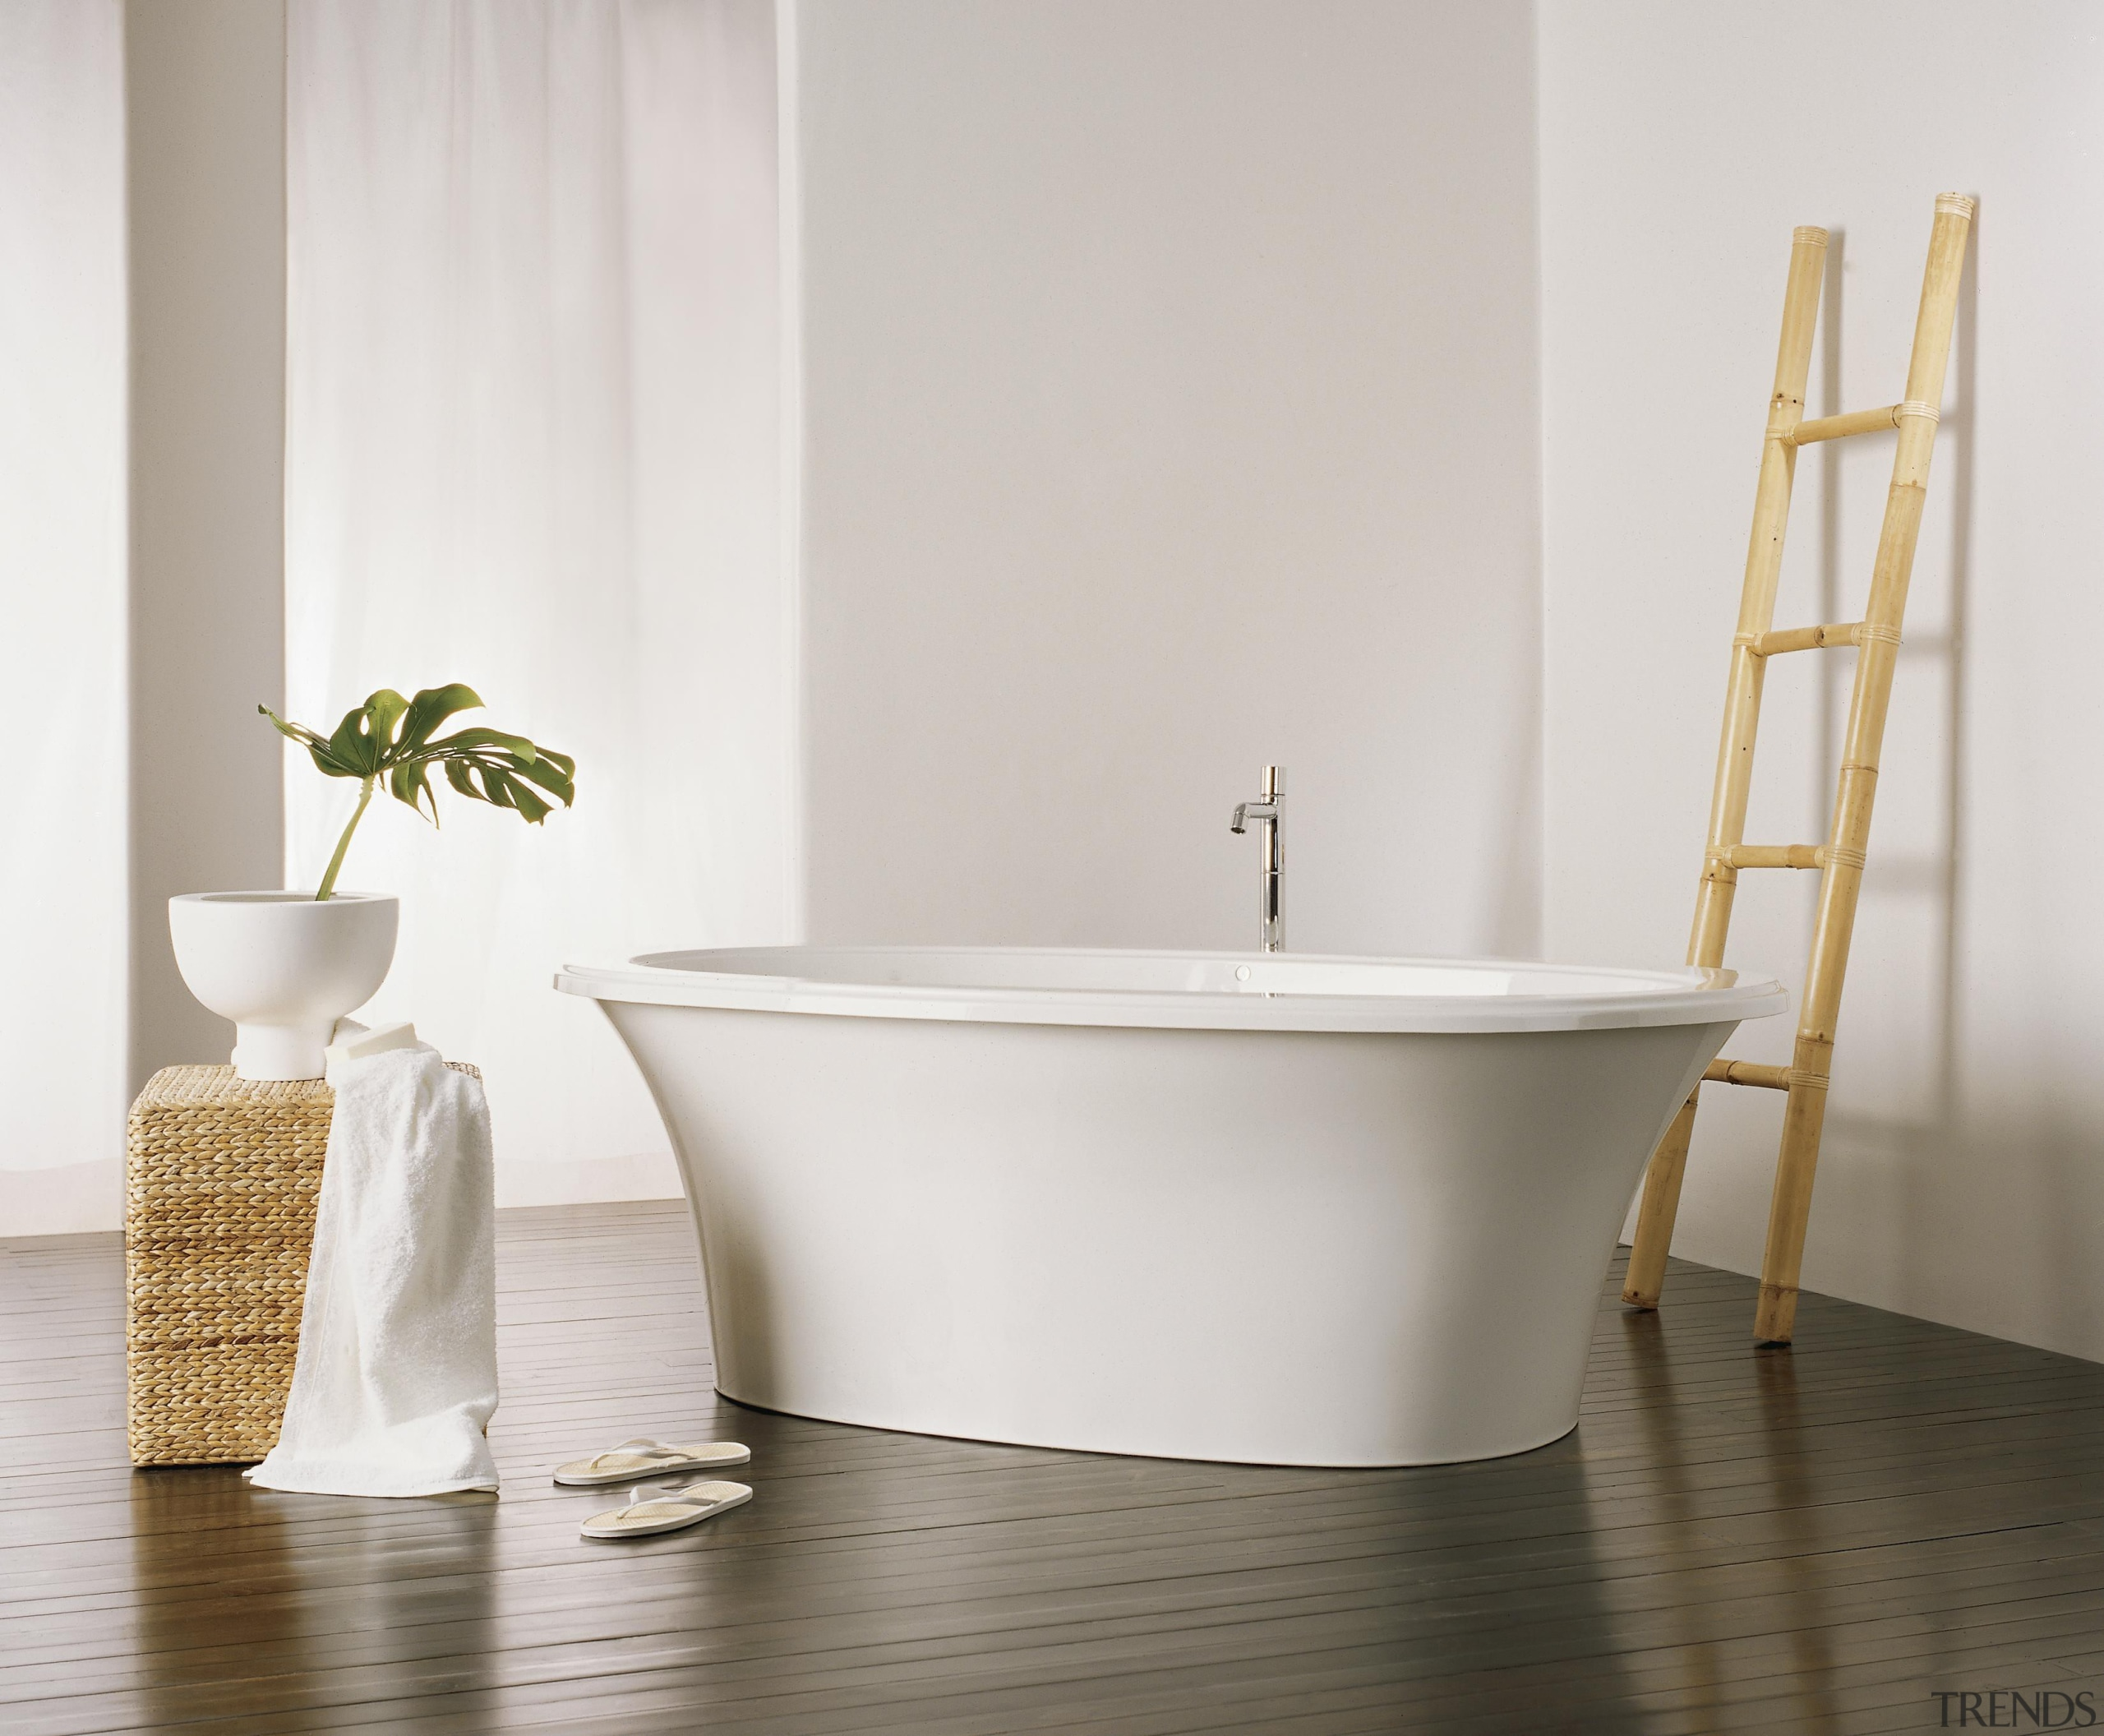 This classic and contemporary freestanding designs in offered bathroom, bathroom cabinet, bathroom sink, bathtub, ceramic, interior design, plumbing fixture, product, product design, sink, tap, toilet seat, white